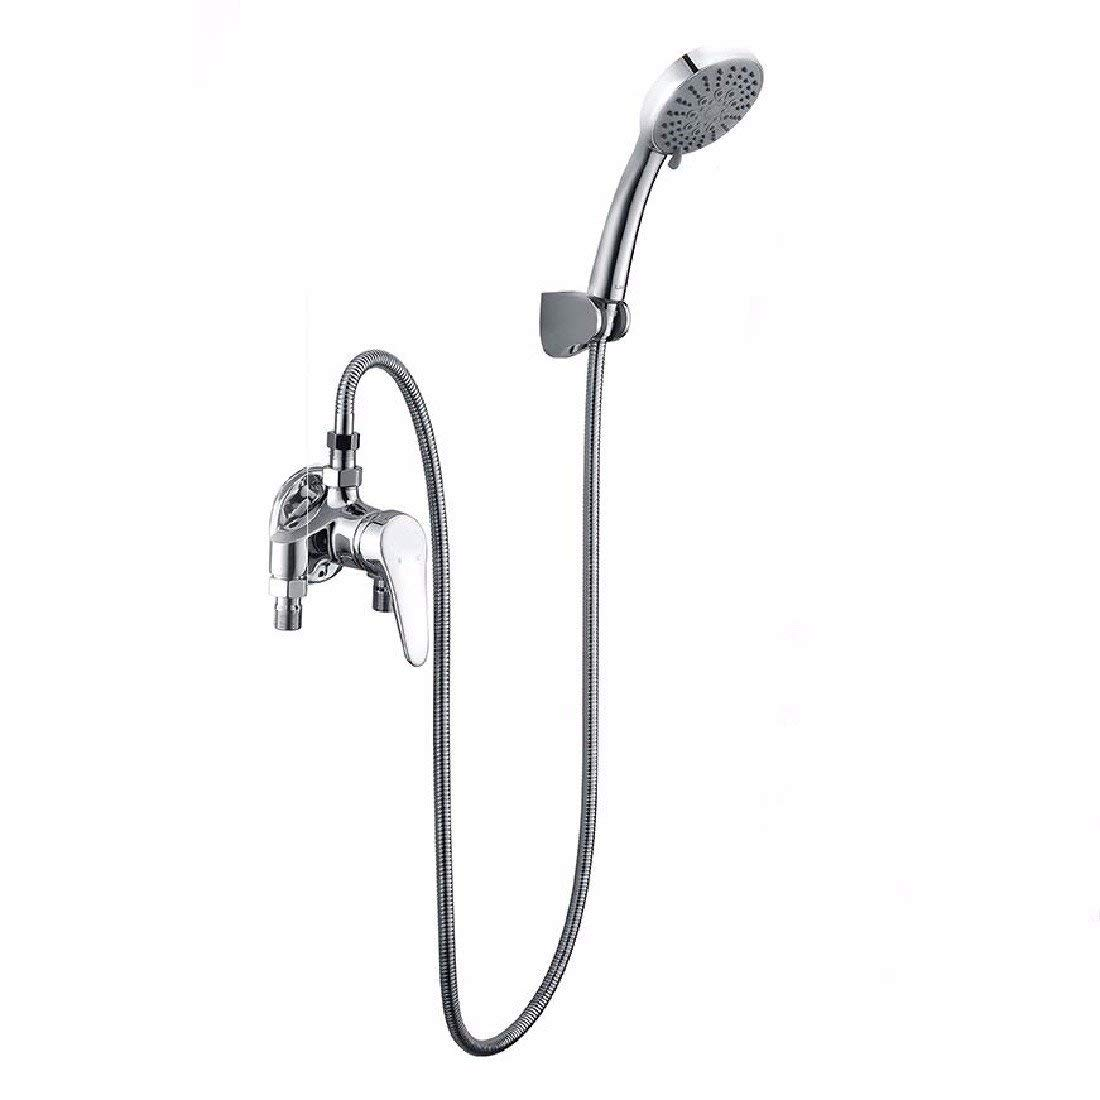 WAWZJ Bathroom Shower Set Bright Shower Shower Full Copper Hot And Cold Water Mixing Shower